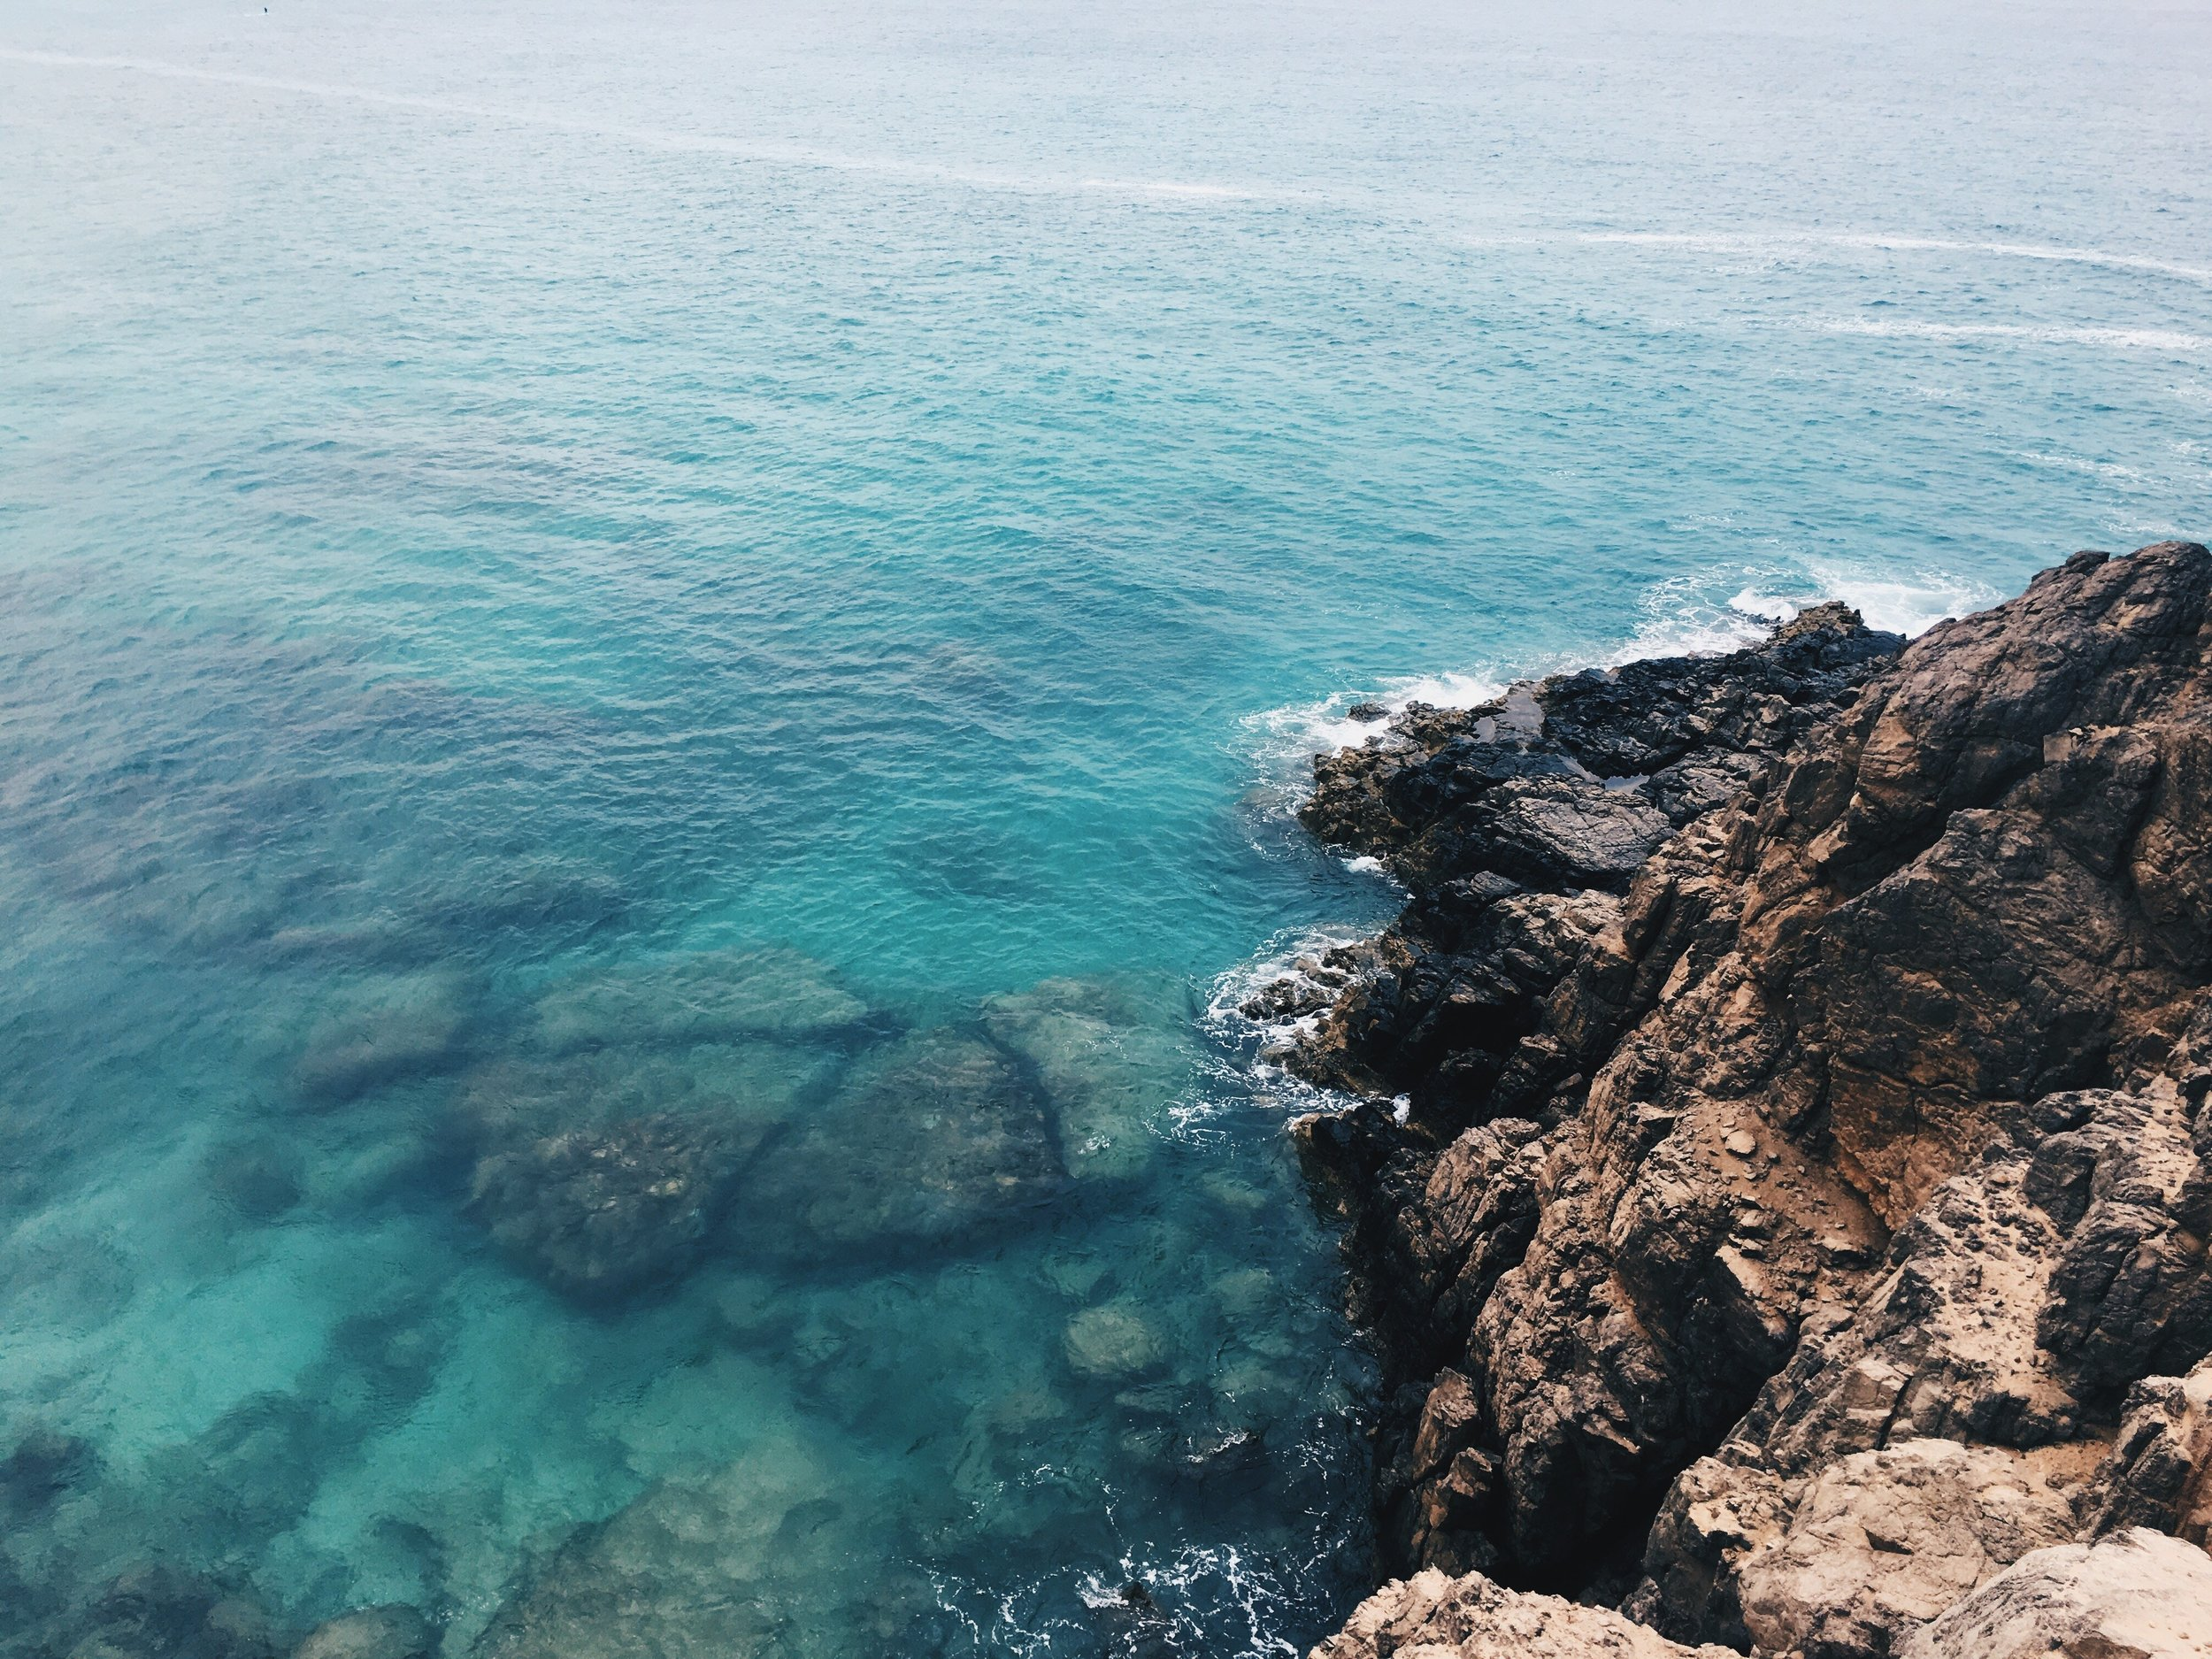 Above: Escape to the sea caves at low tide in Fuerteventura.